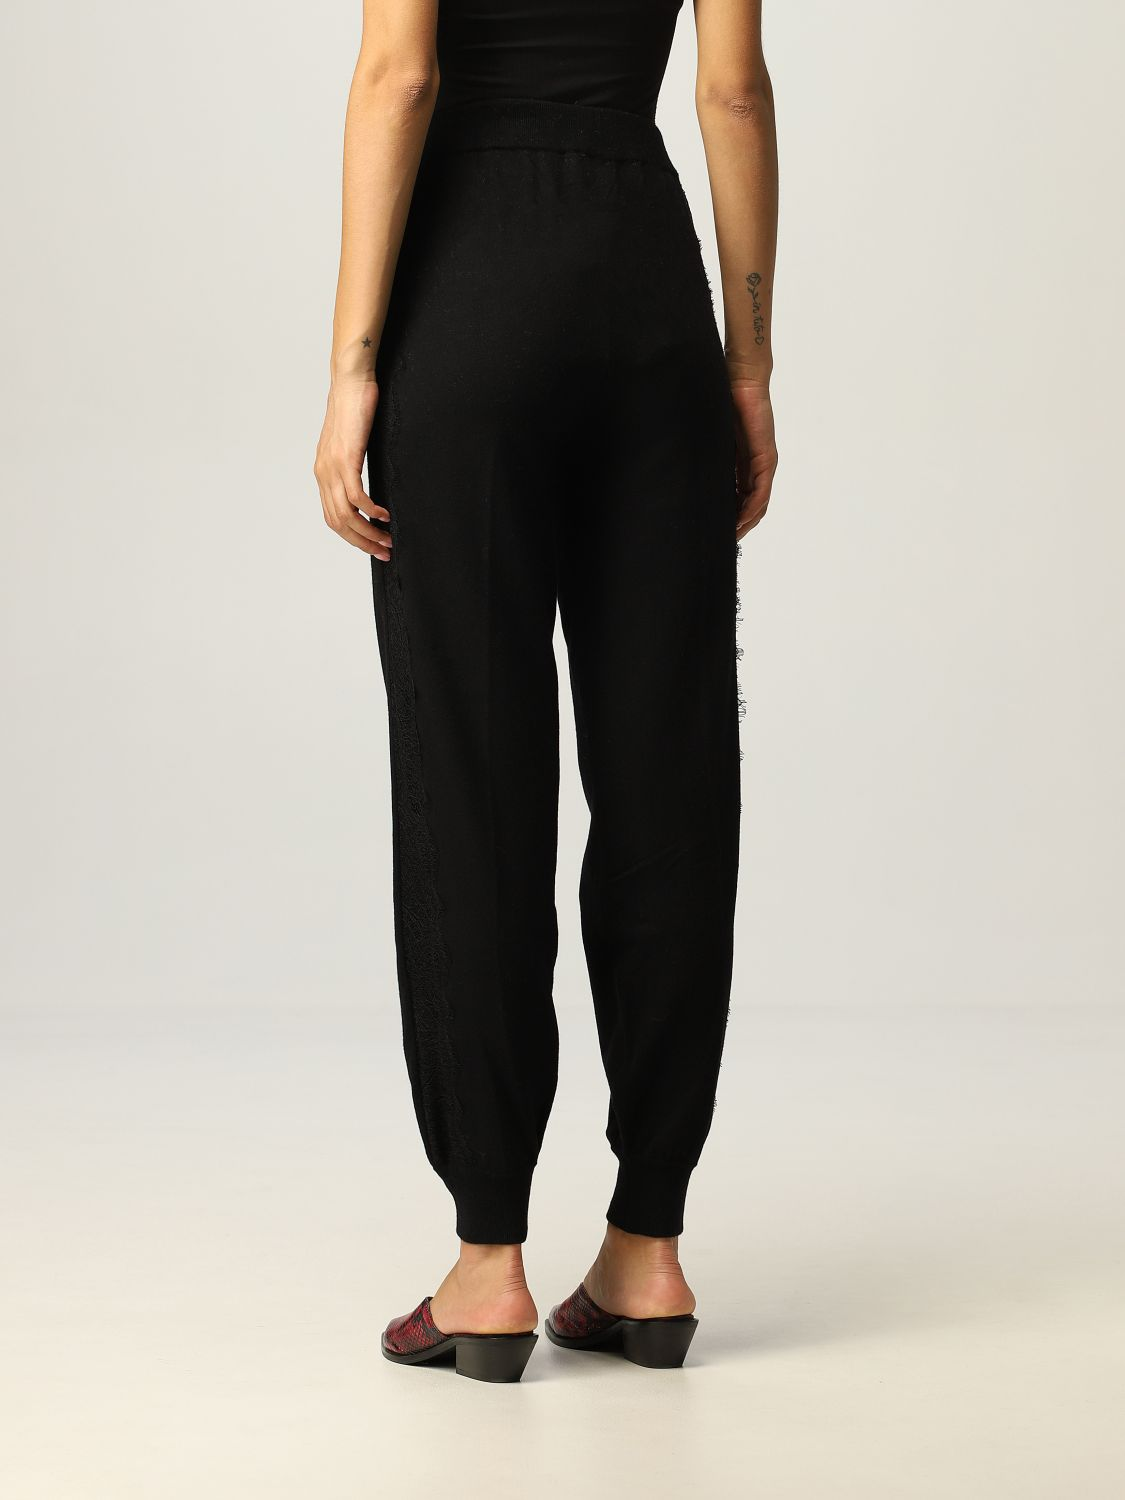 SHOPPING ON LINE TWINSET MILANO PANTALONI JOGGING IN MAGLIA CON PIZZO NEW COLLECTION PREVIEW FALL WINTER 2022-2